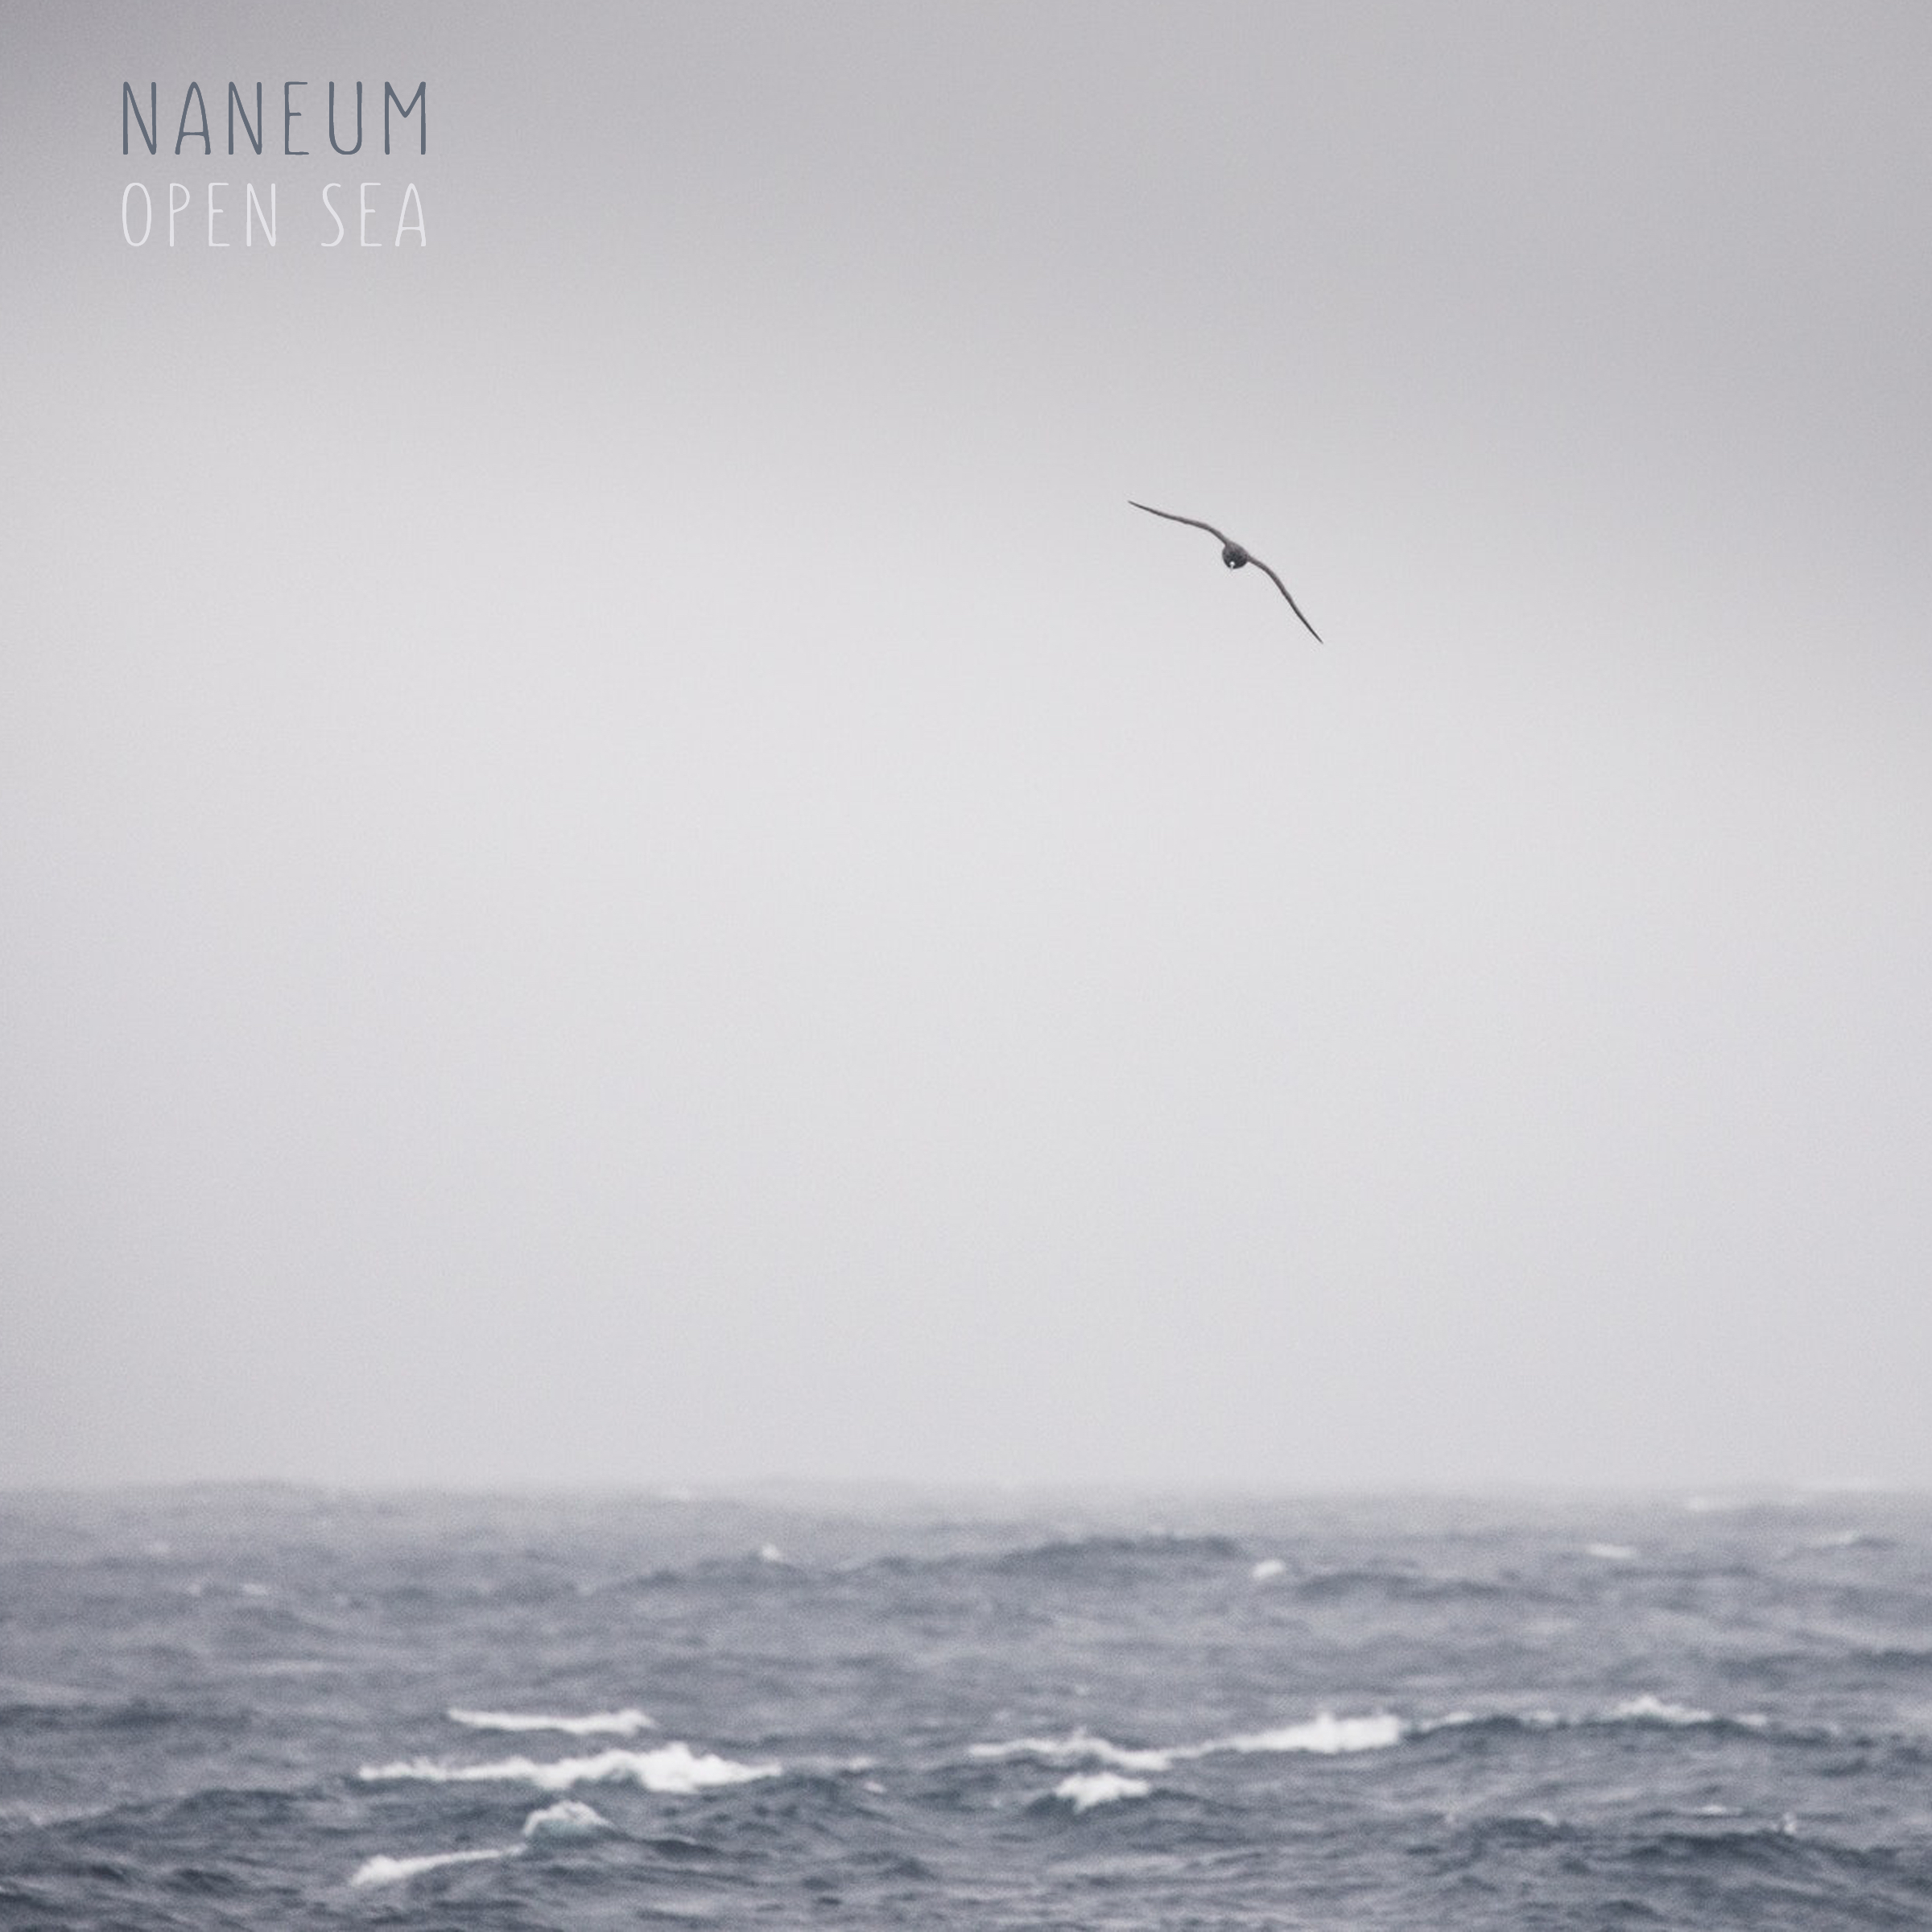 Naneum-Open Sea - Naneum, pronounced [næ-nəm], is created byJon Solo, who has been the trusted keys and guitar player for artists Angus and Julia Stone, Passenger, and Brett Dennenfor over 10 years. Between tours, Solo has been composing and recording his own music. In 2018, he self-released his first album, Home For Hemingway, which was well received by fellow artists and landed him an opening slot in Europe last summer for Angus and Julia Stone.In the fall of 2018, Solo starting recording Open Seaat his home studio in Brooklyn, NY. The collection of songs were written from the concept of ocean sounds. Solo played all the instruments on the album, however, he was joined by Israeli artist and cellist, Hadas Kleinman on track 4, Accretion.